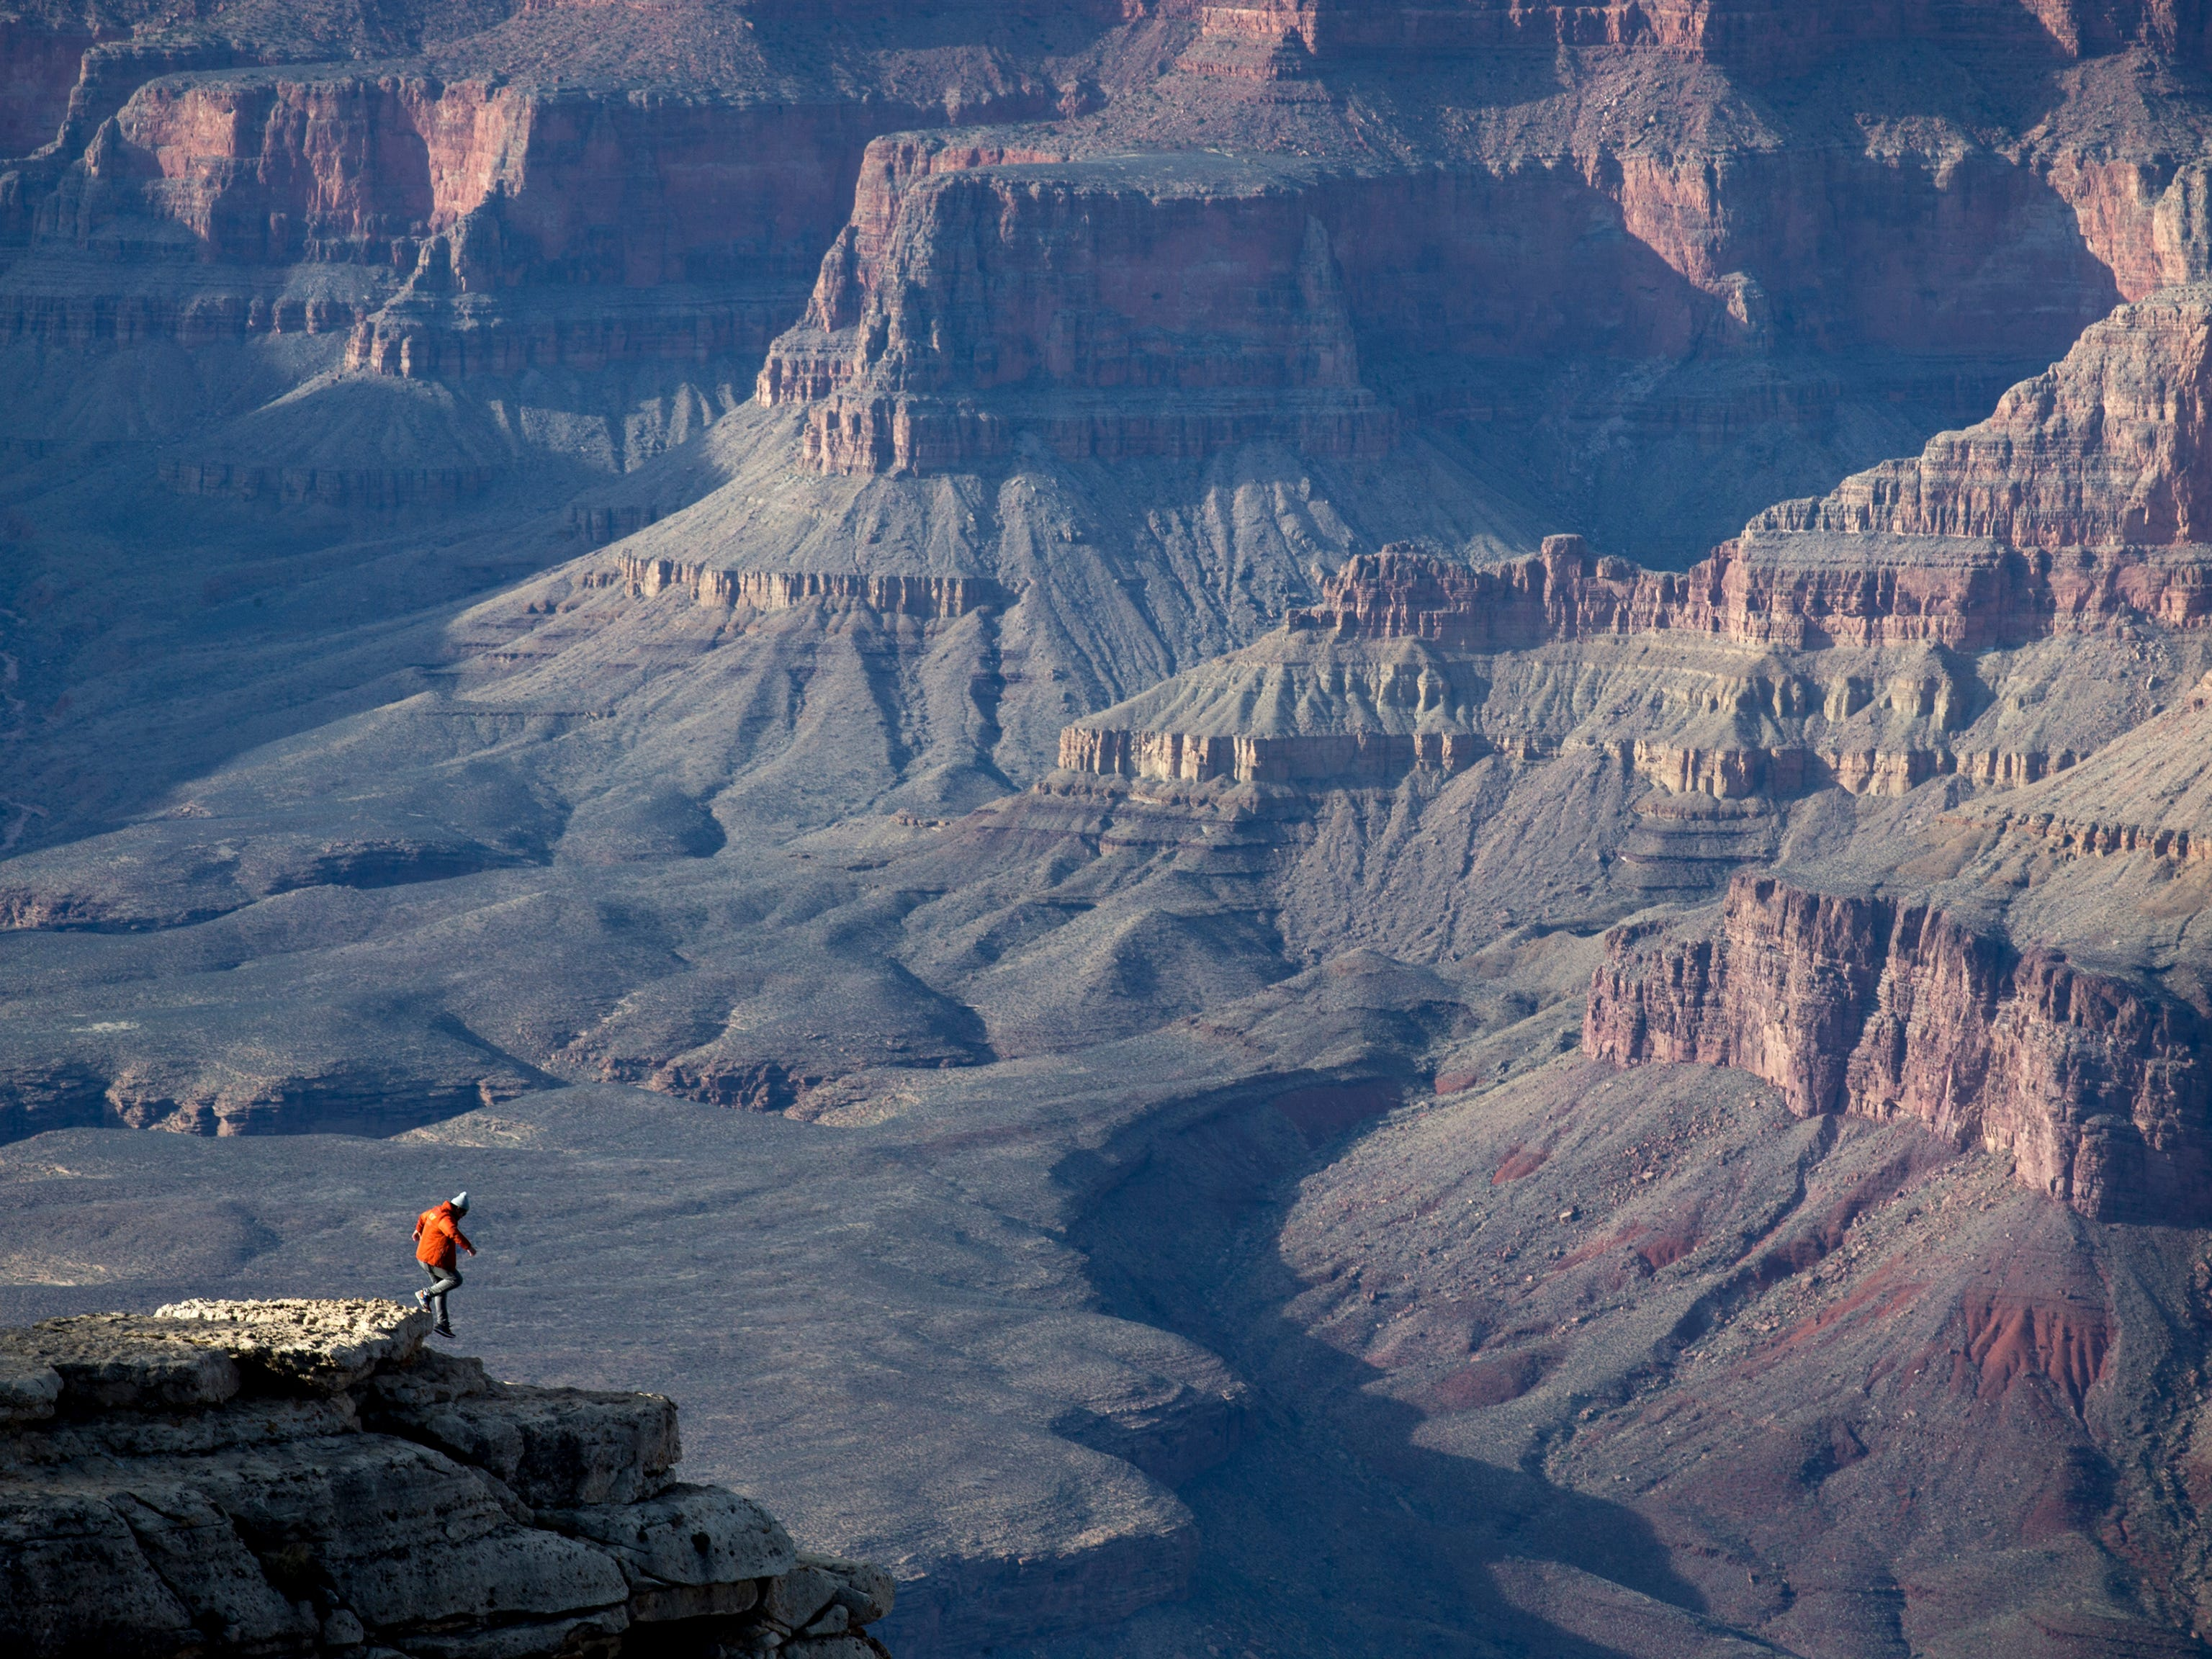 A hiker enjoys Mather Point in the Grand Canyon on Feb. 17, 2016.